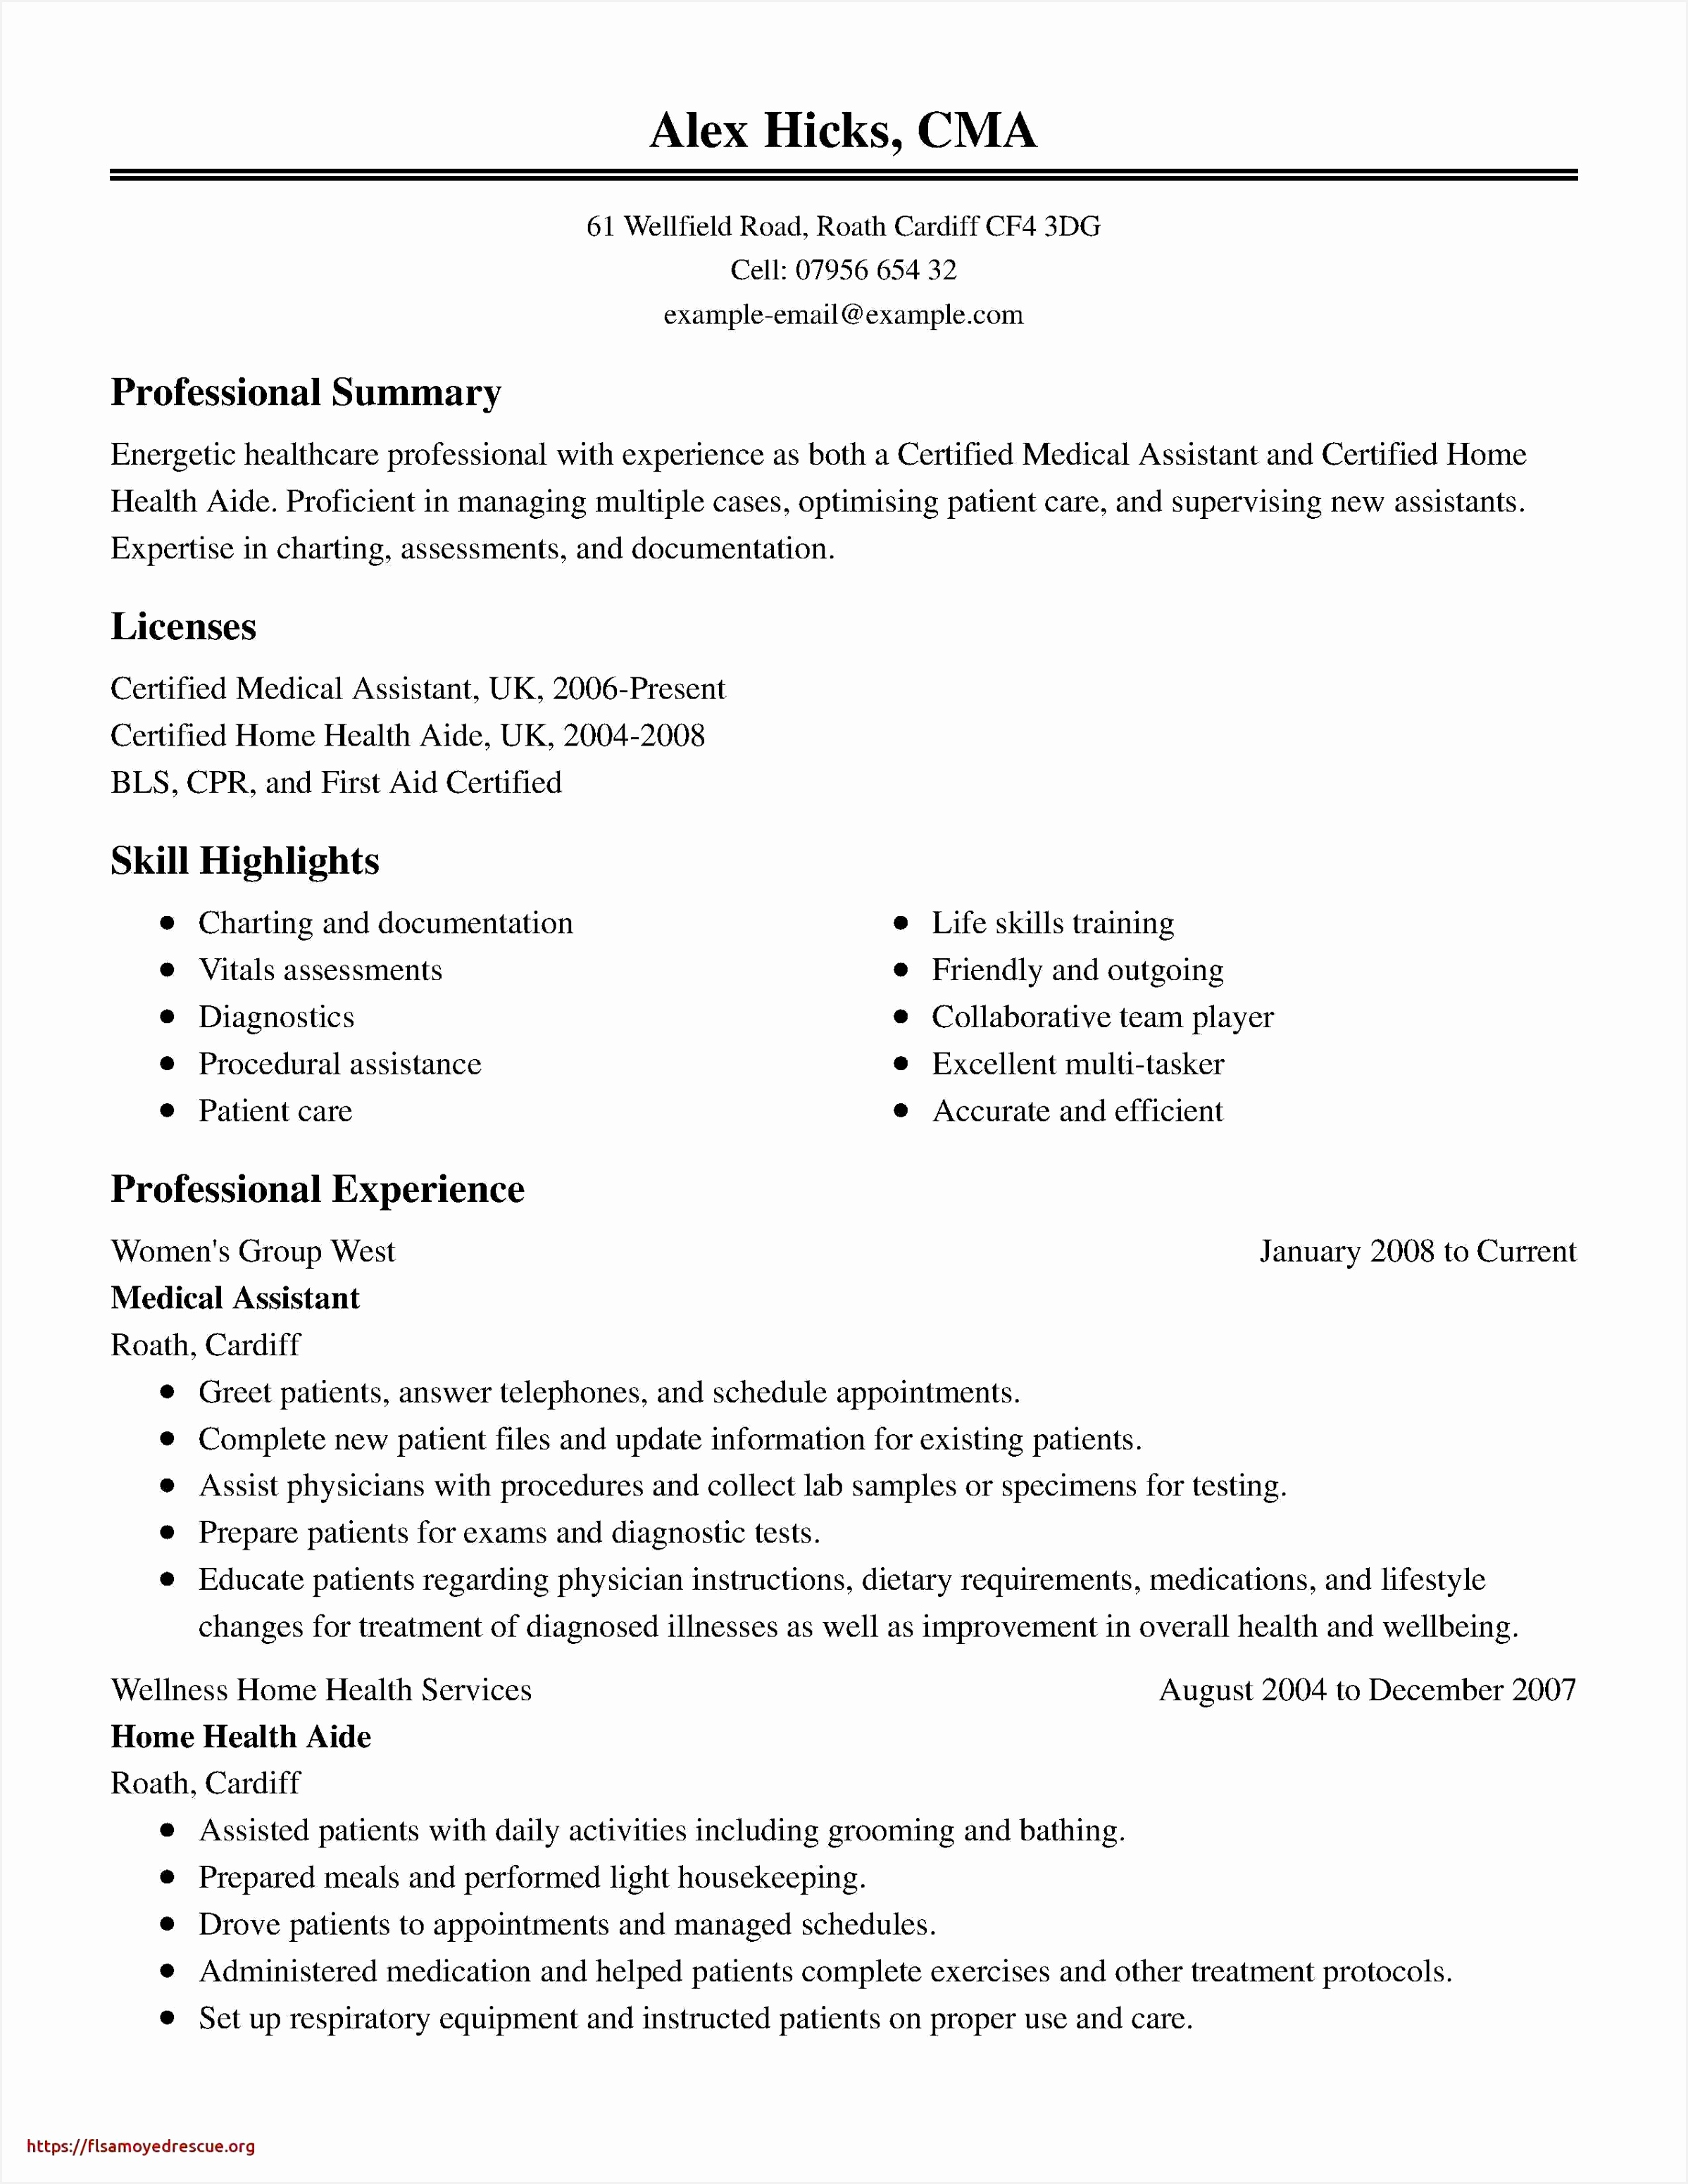 Examples Resumes for Jobs Anrsu Luxury Examples A Resume Lovely Example Job Resume Fresh Luxury Examples31022397